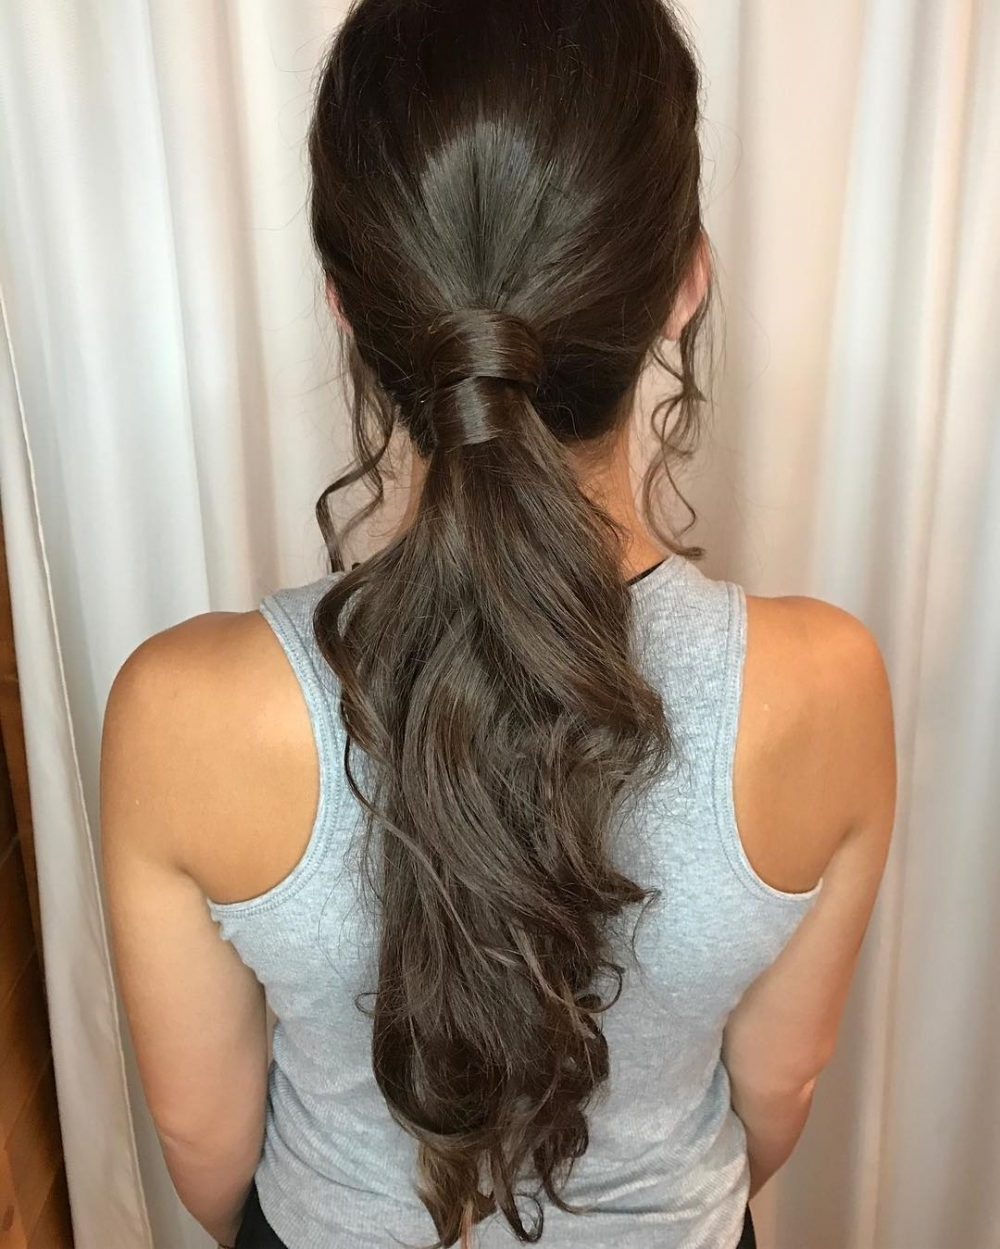 38 Ridiculously Cute Hairstyles For Long Hair (Popular In 2018) With Regard To Fashionable Chocolatey Pony Hairstyles With Wavy Edges (View 1 of 20)